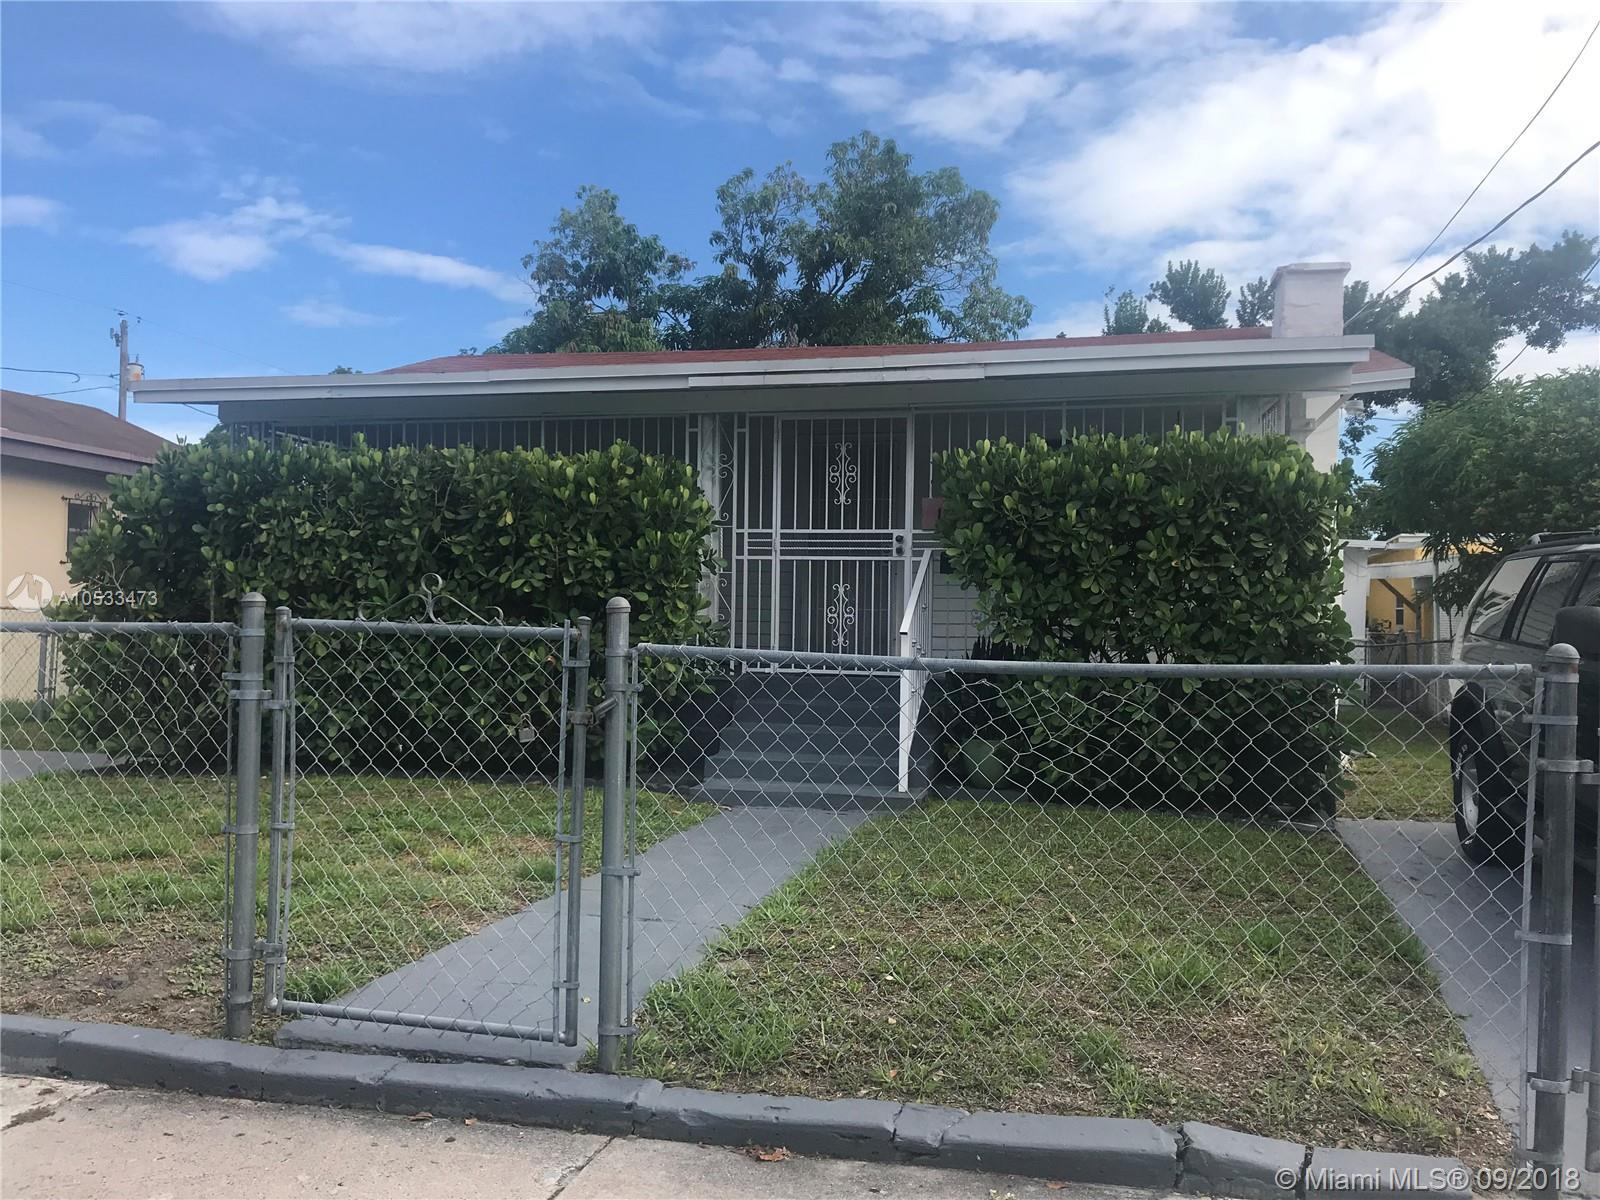 112 NW 33rd St , Miami,  for sale, One Stop Realty - Miami